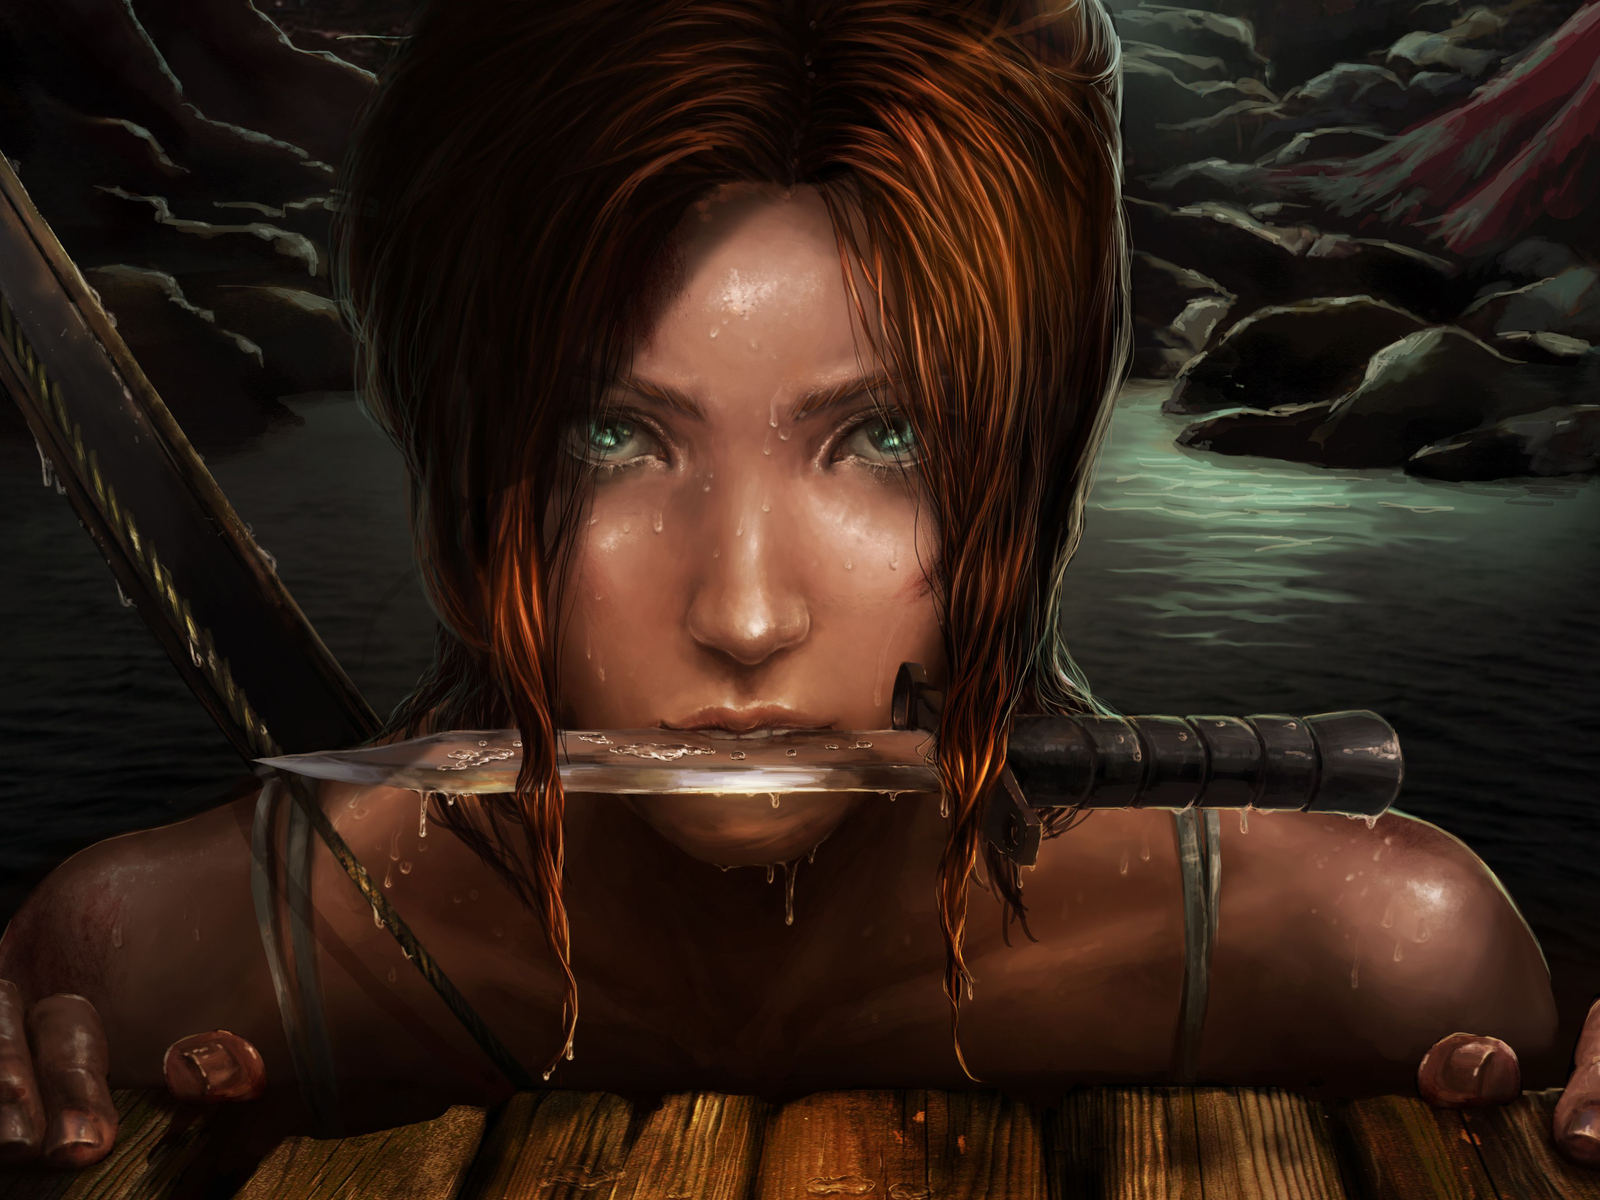 lara-croft-4k-art-ag.jpg